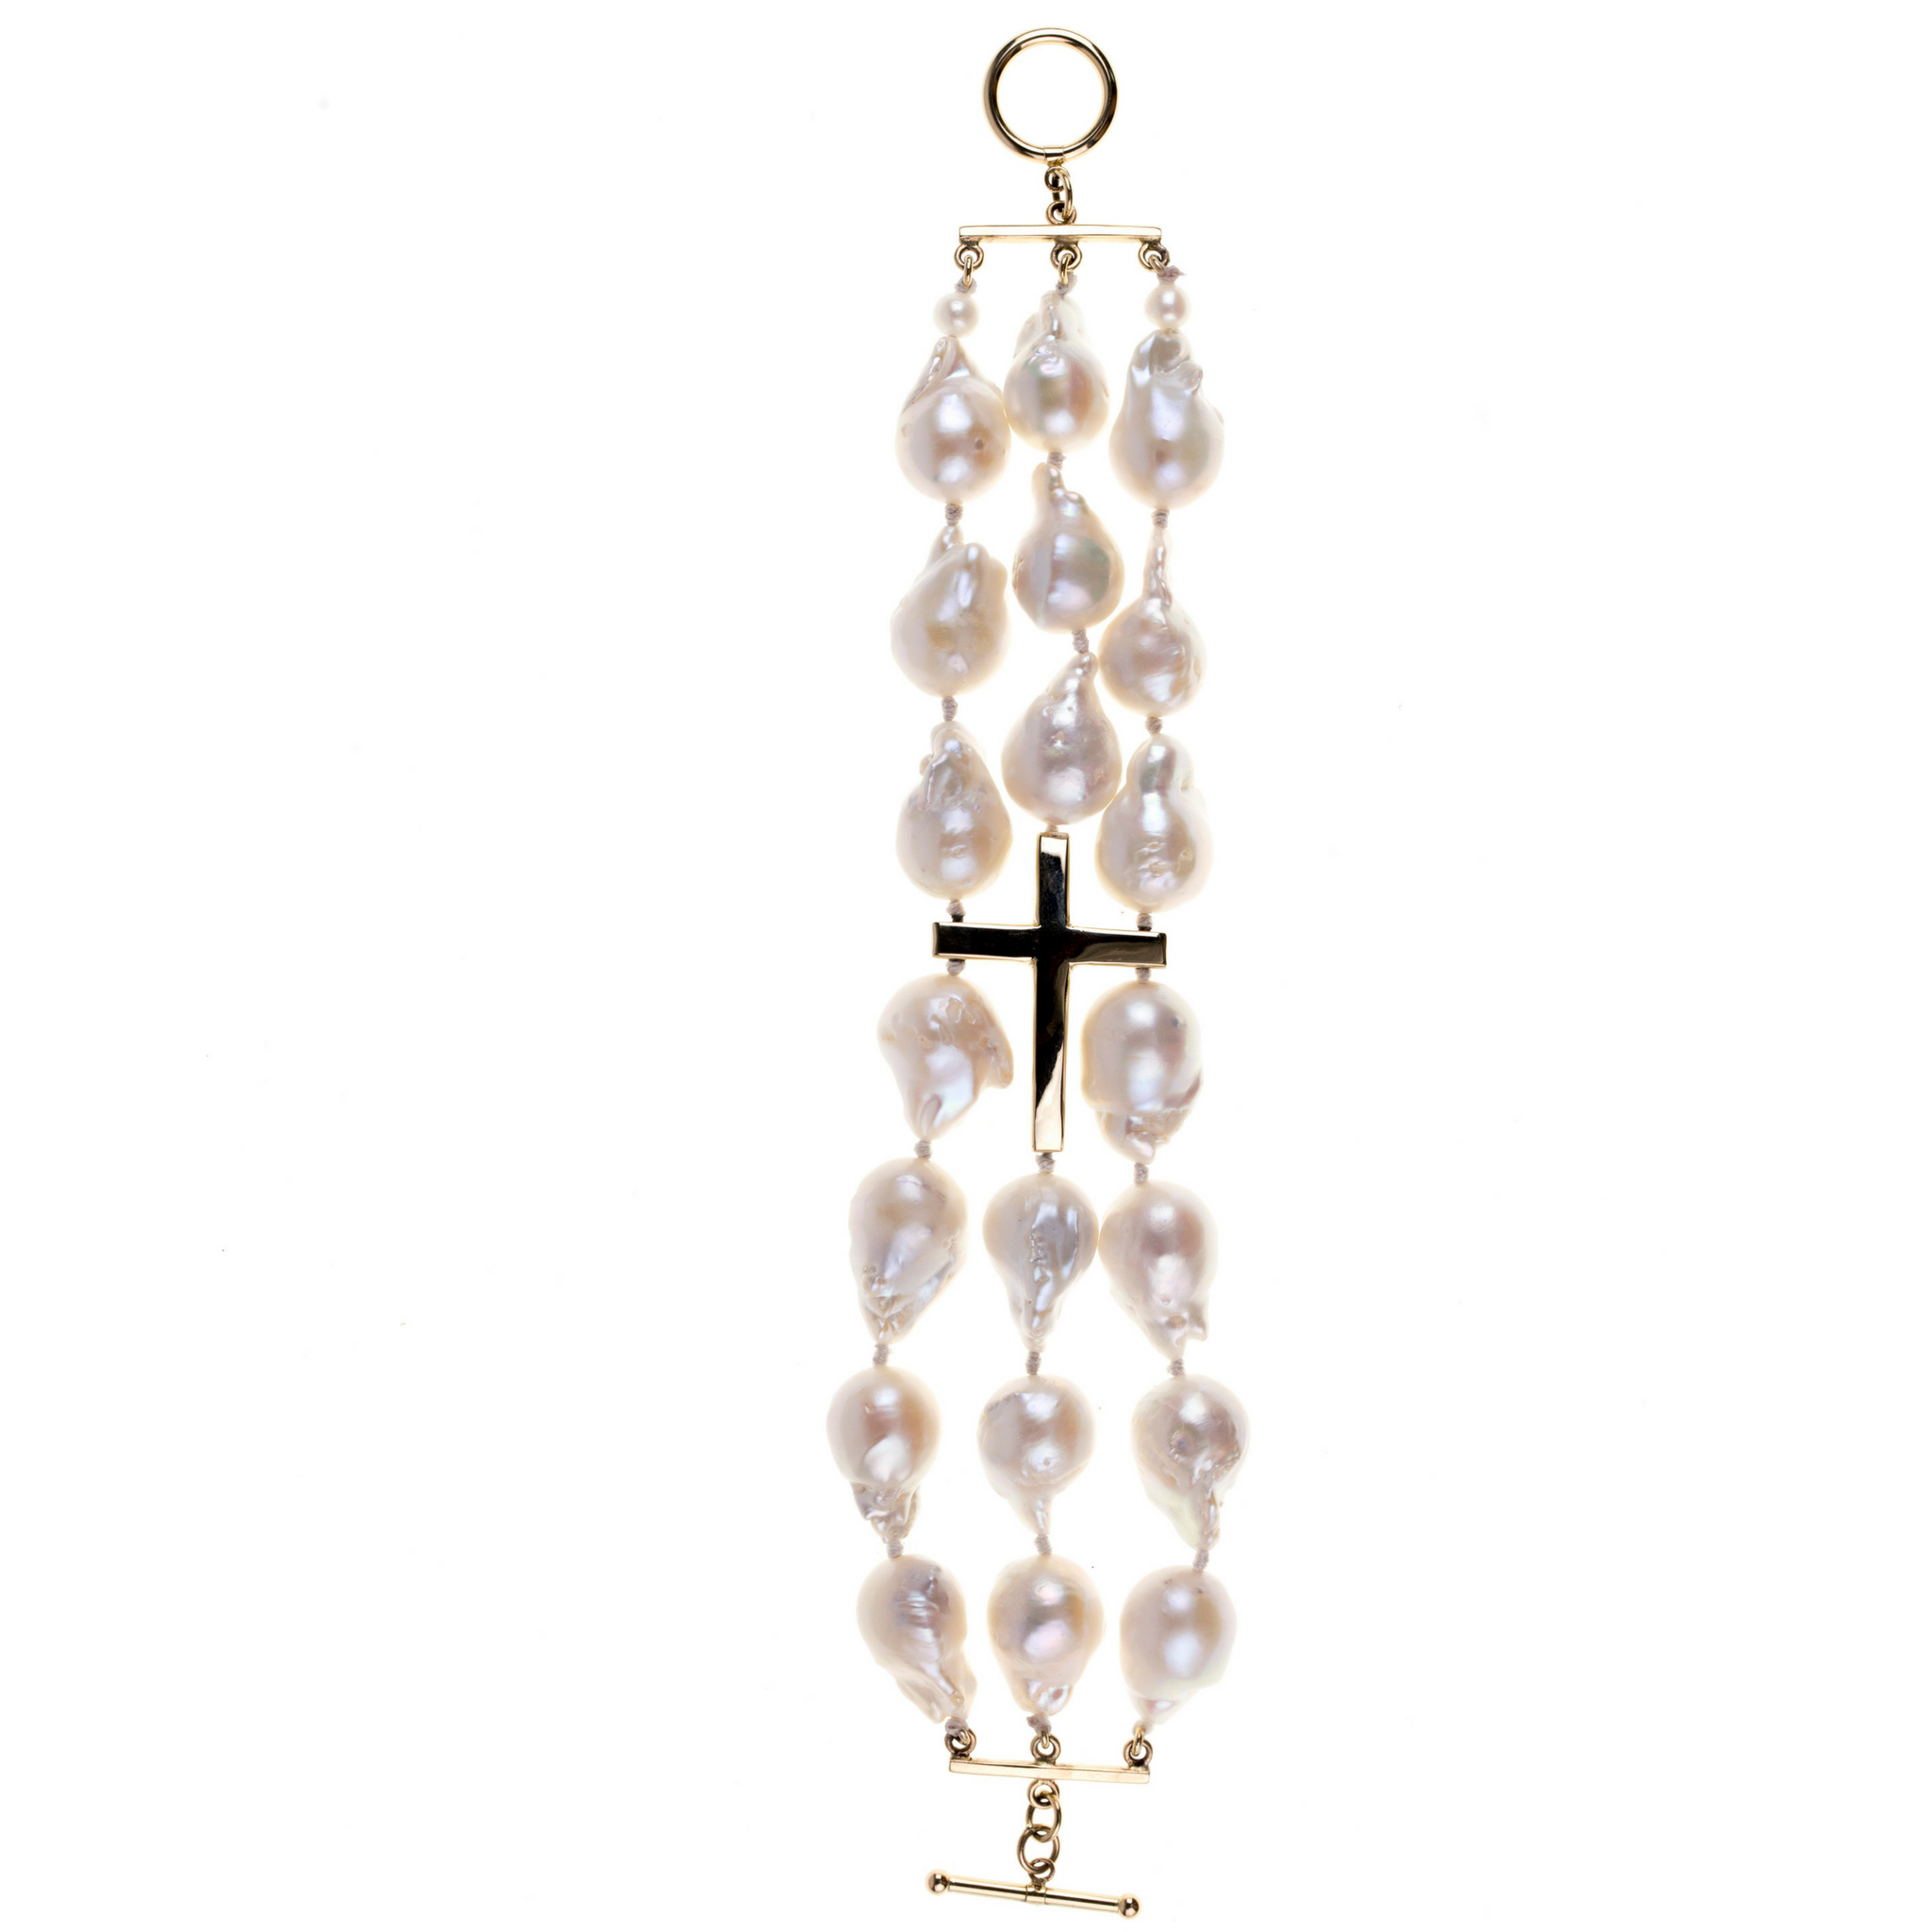 14k Gold and Freshwater Pearl Bracelet